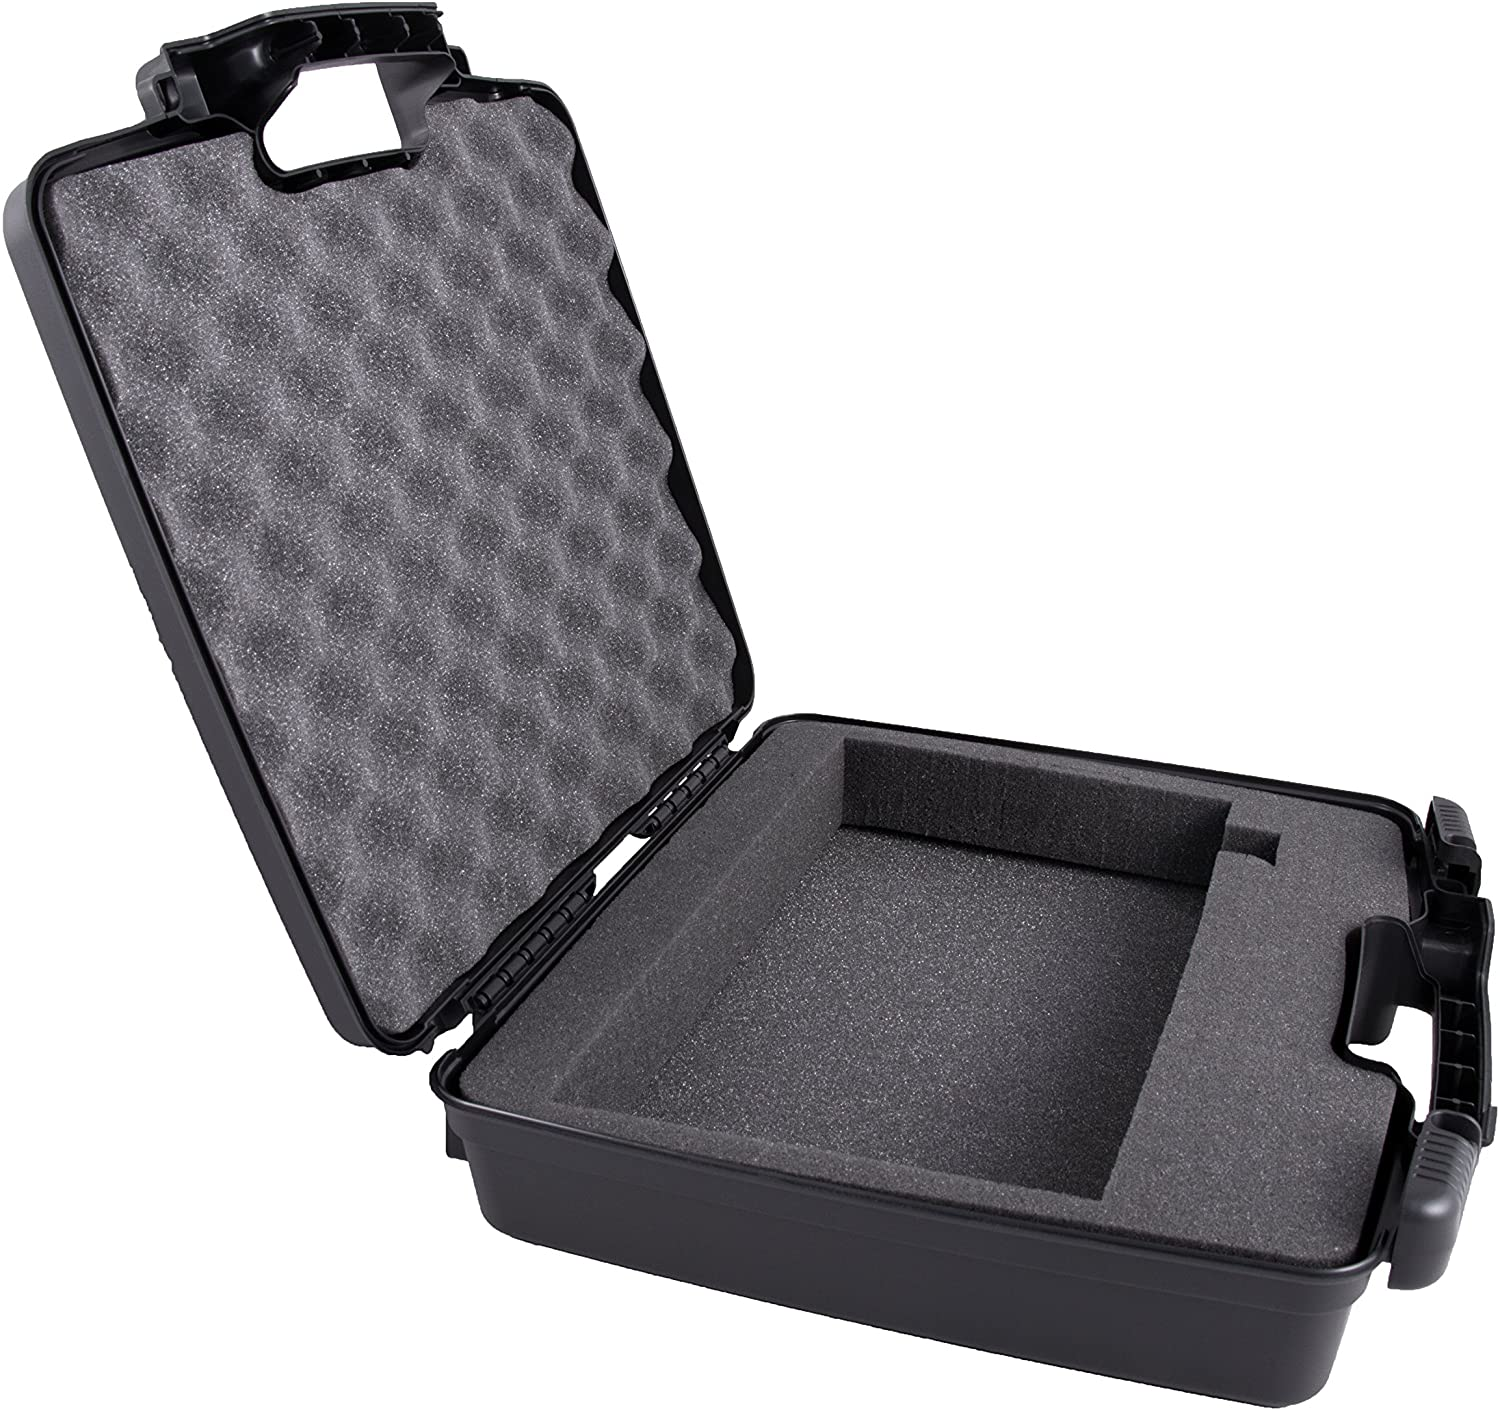 CASEMATIX Controller Case Fits Akai Professional Fire FL Studio With Plug-And-Play USB - INCLUDES PROTECTIVE CARRY CASE ONLY